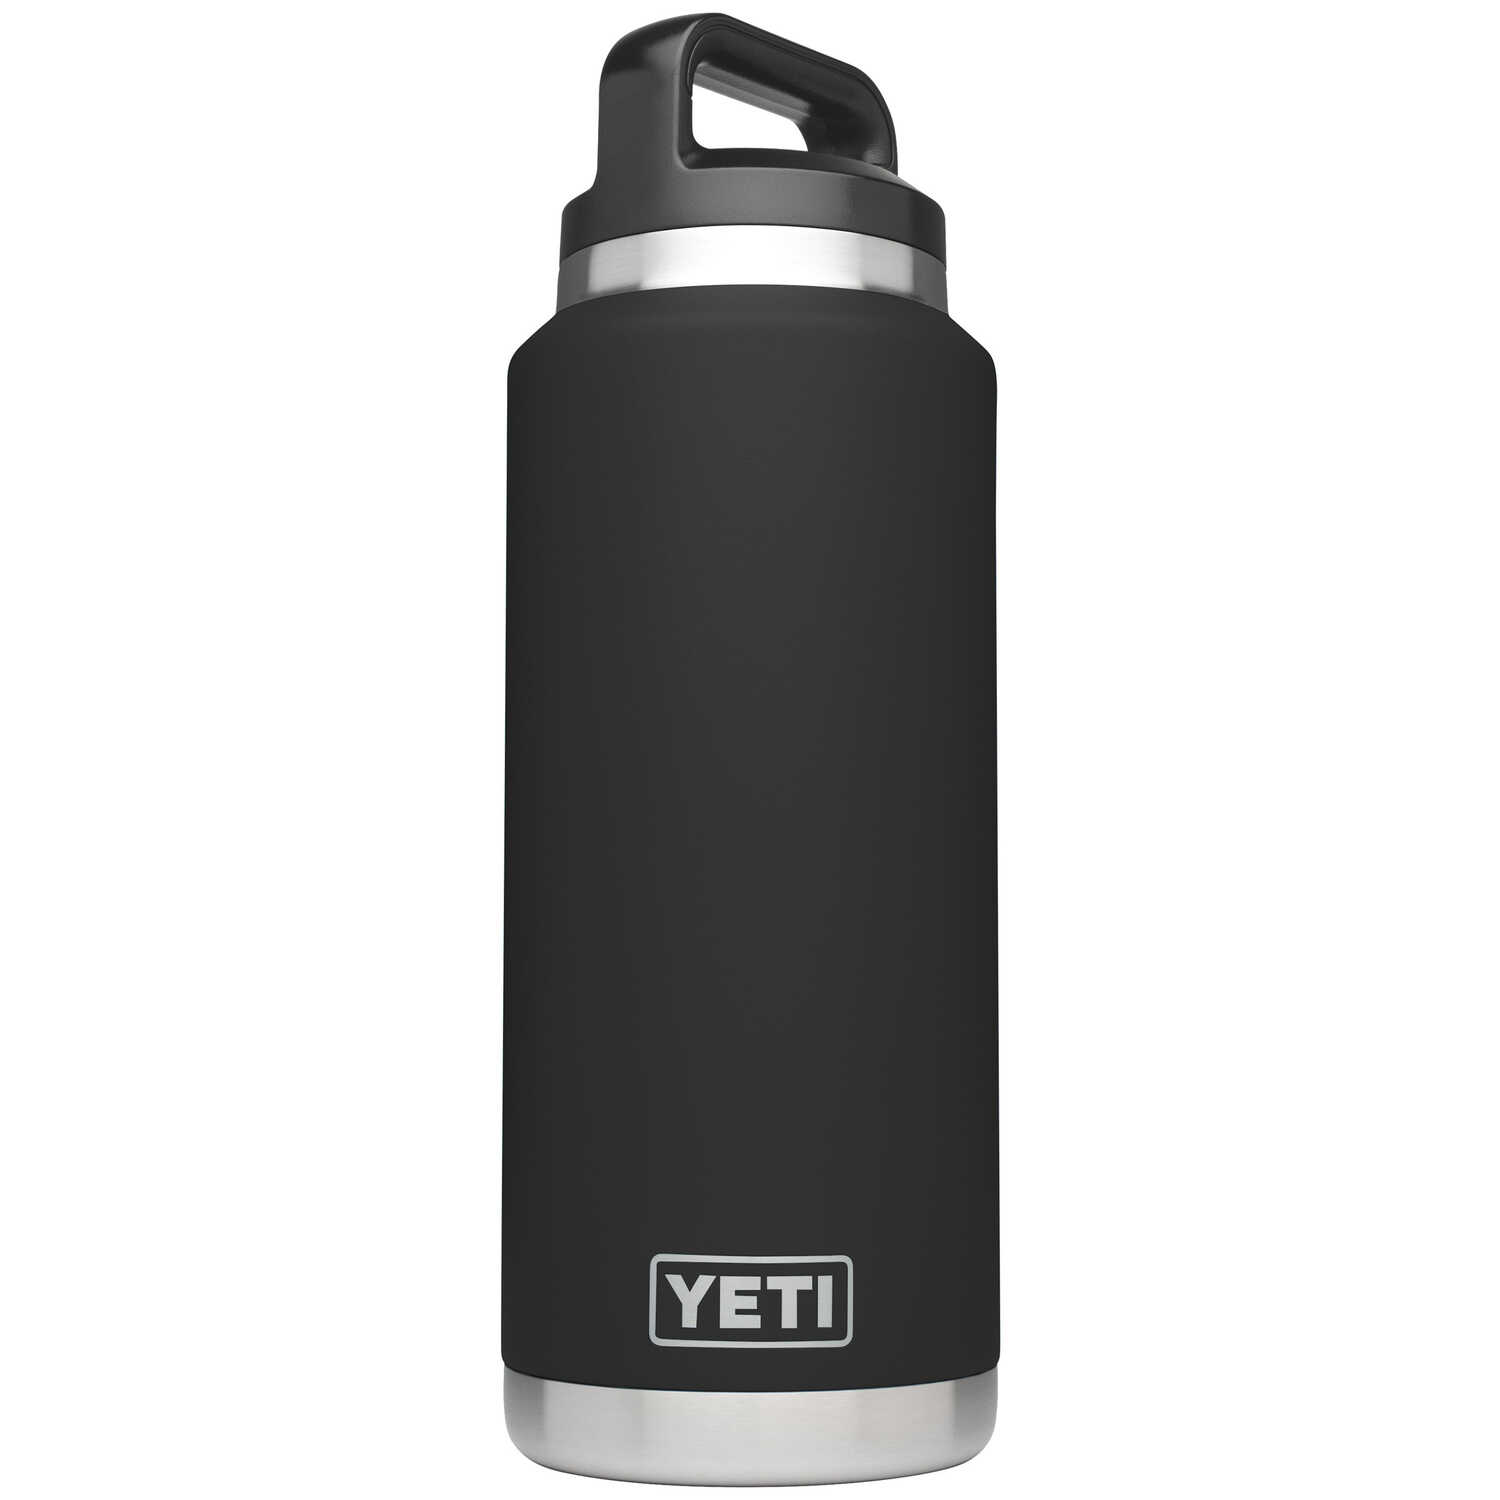 YETI  Rambler  Stainless Steel  Insulated Bottle  BPA Free 36 oz. Black